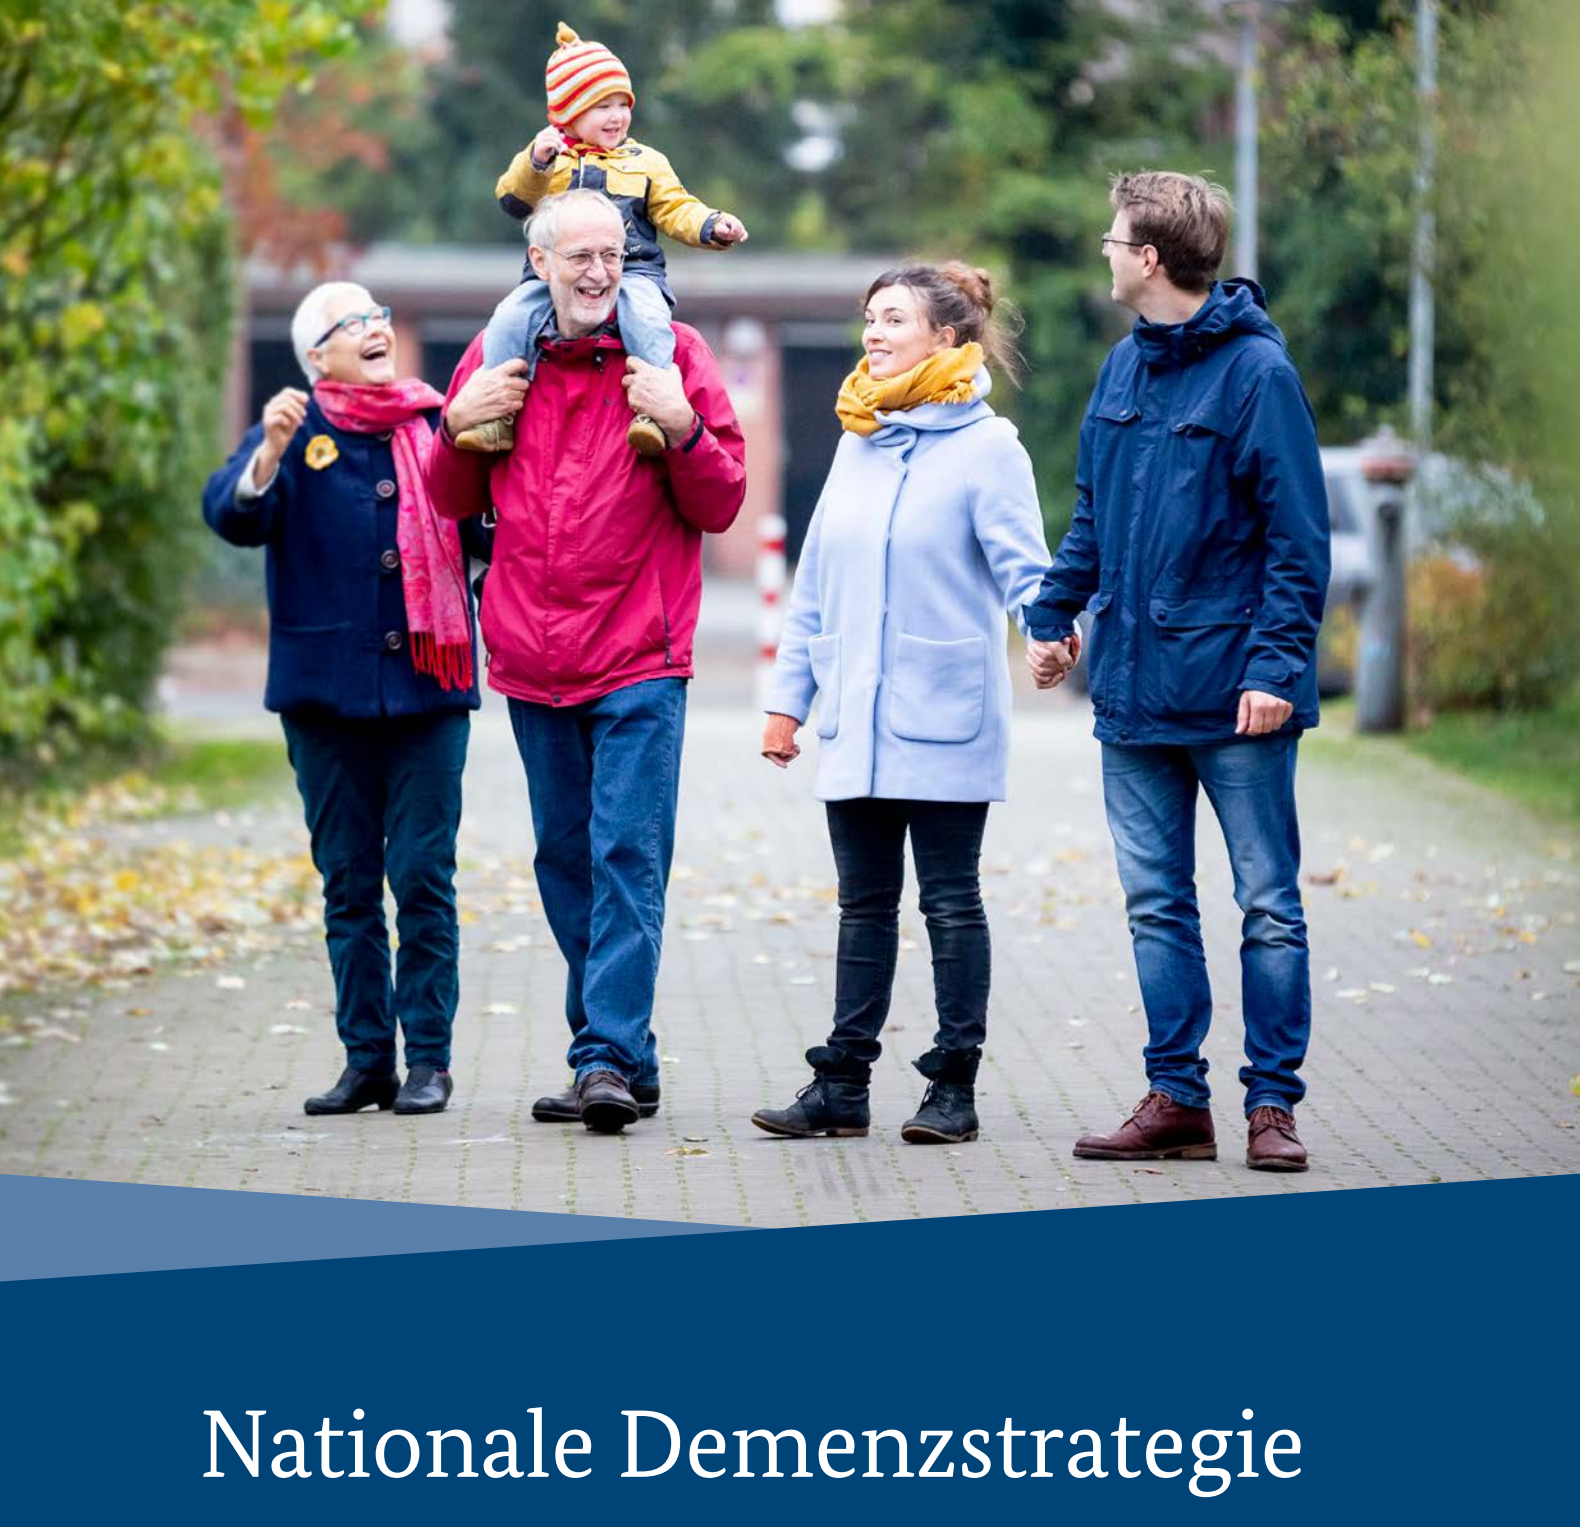 Nationale Demenzstrategie